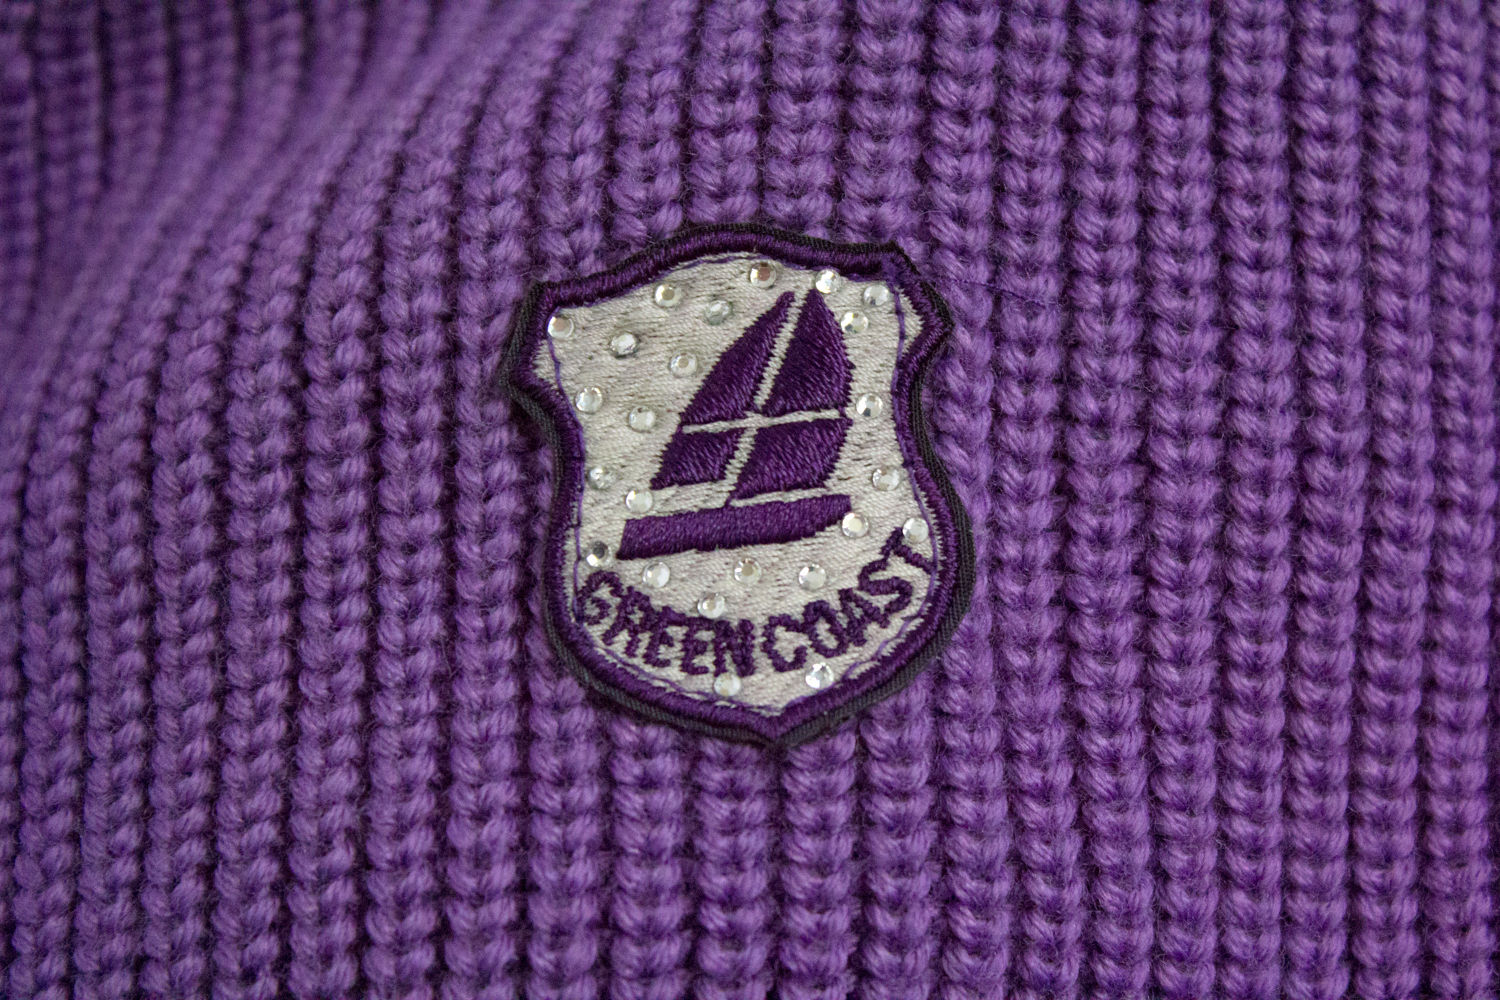 GREEN COAST Yachting Outfits Merino Wool Ultra Violet Cardigan, M - secondfirst